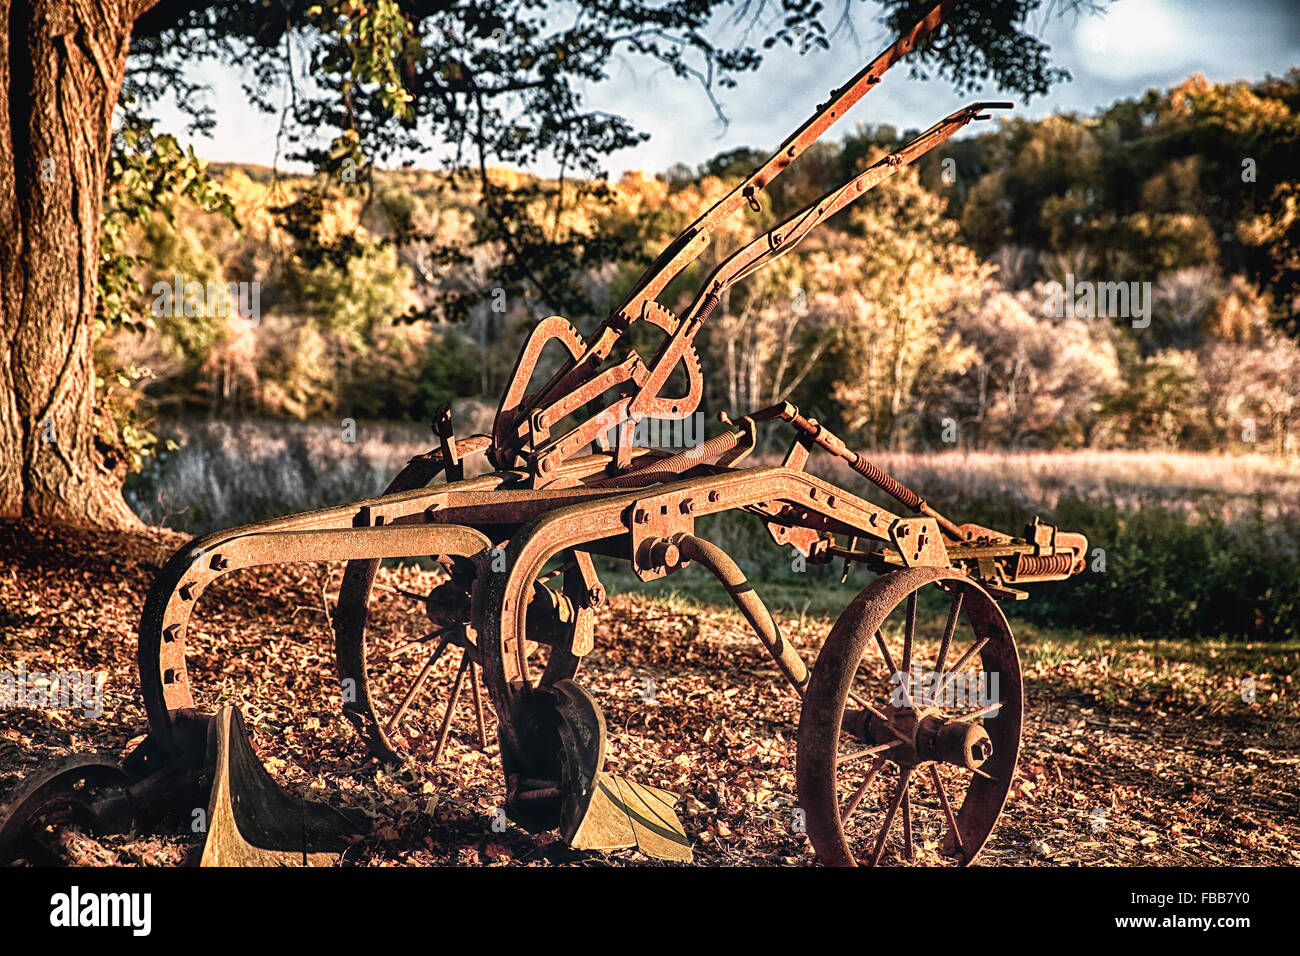 Close Up View of a Rusting Horse Drawn Hoe, Hunterdon County, New Jersey - Stock Image